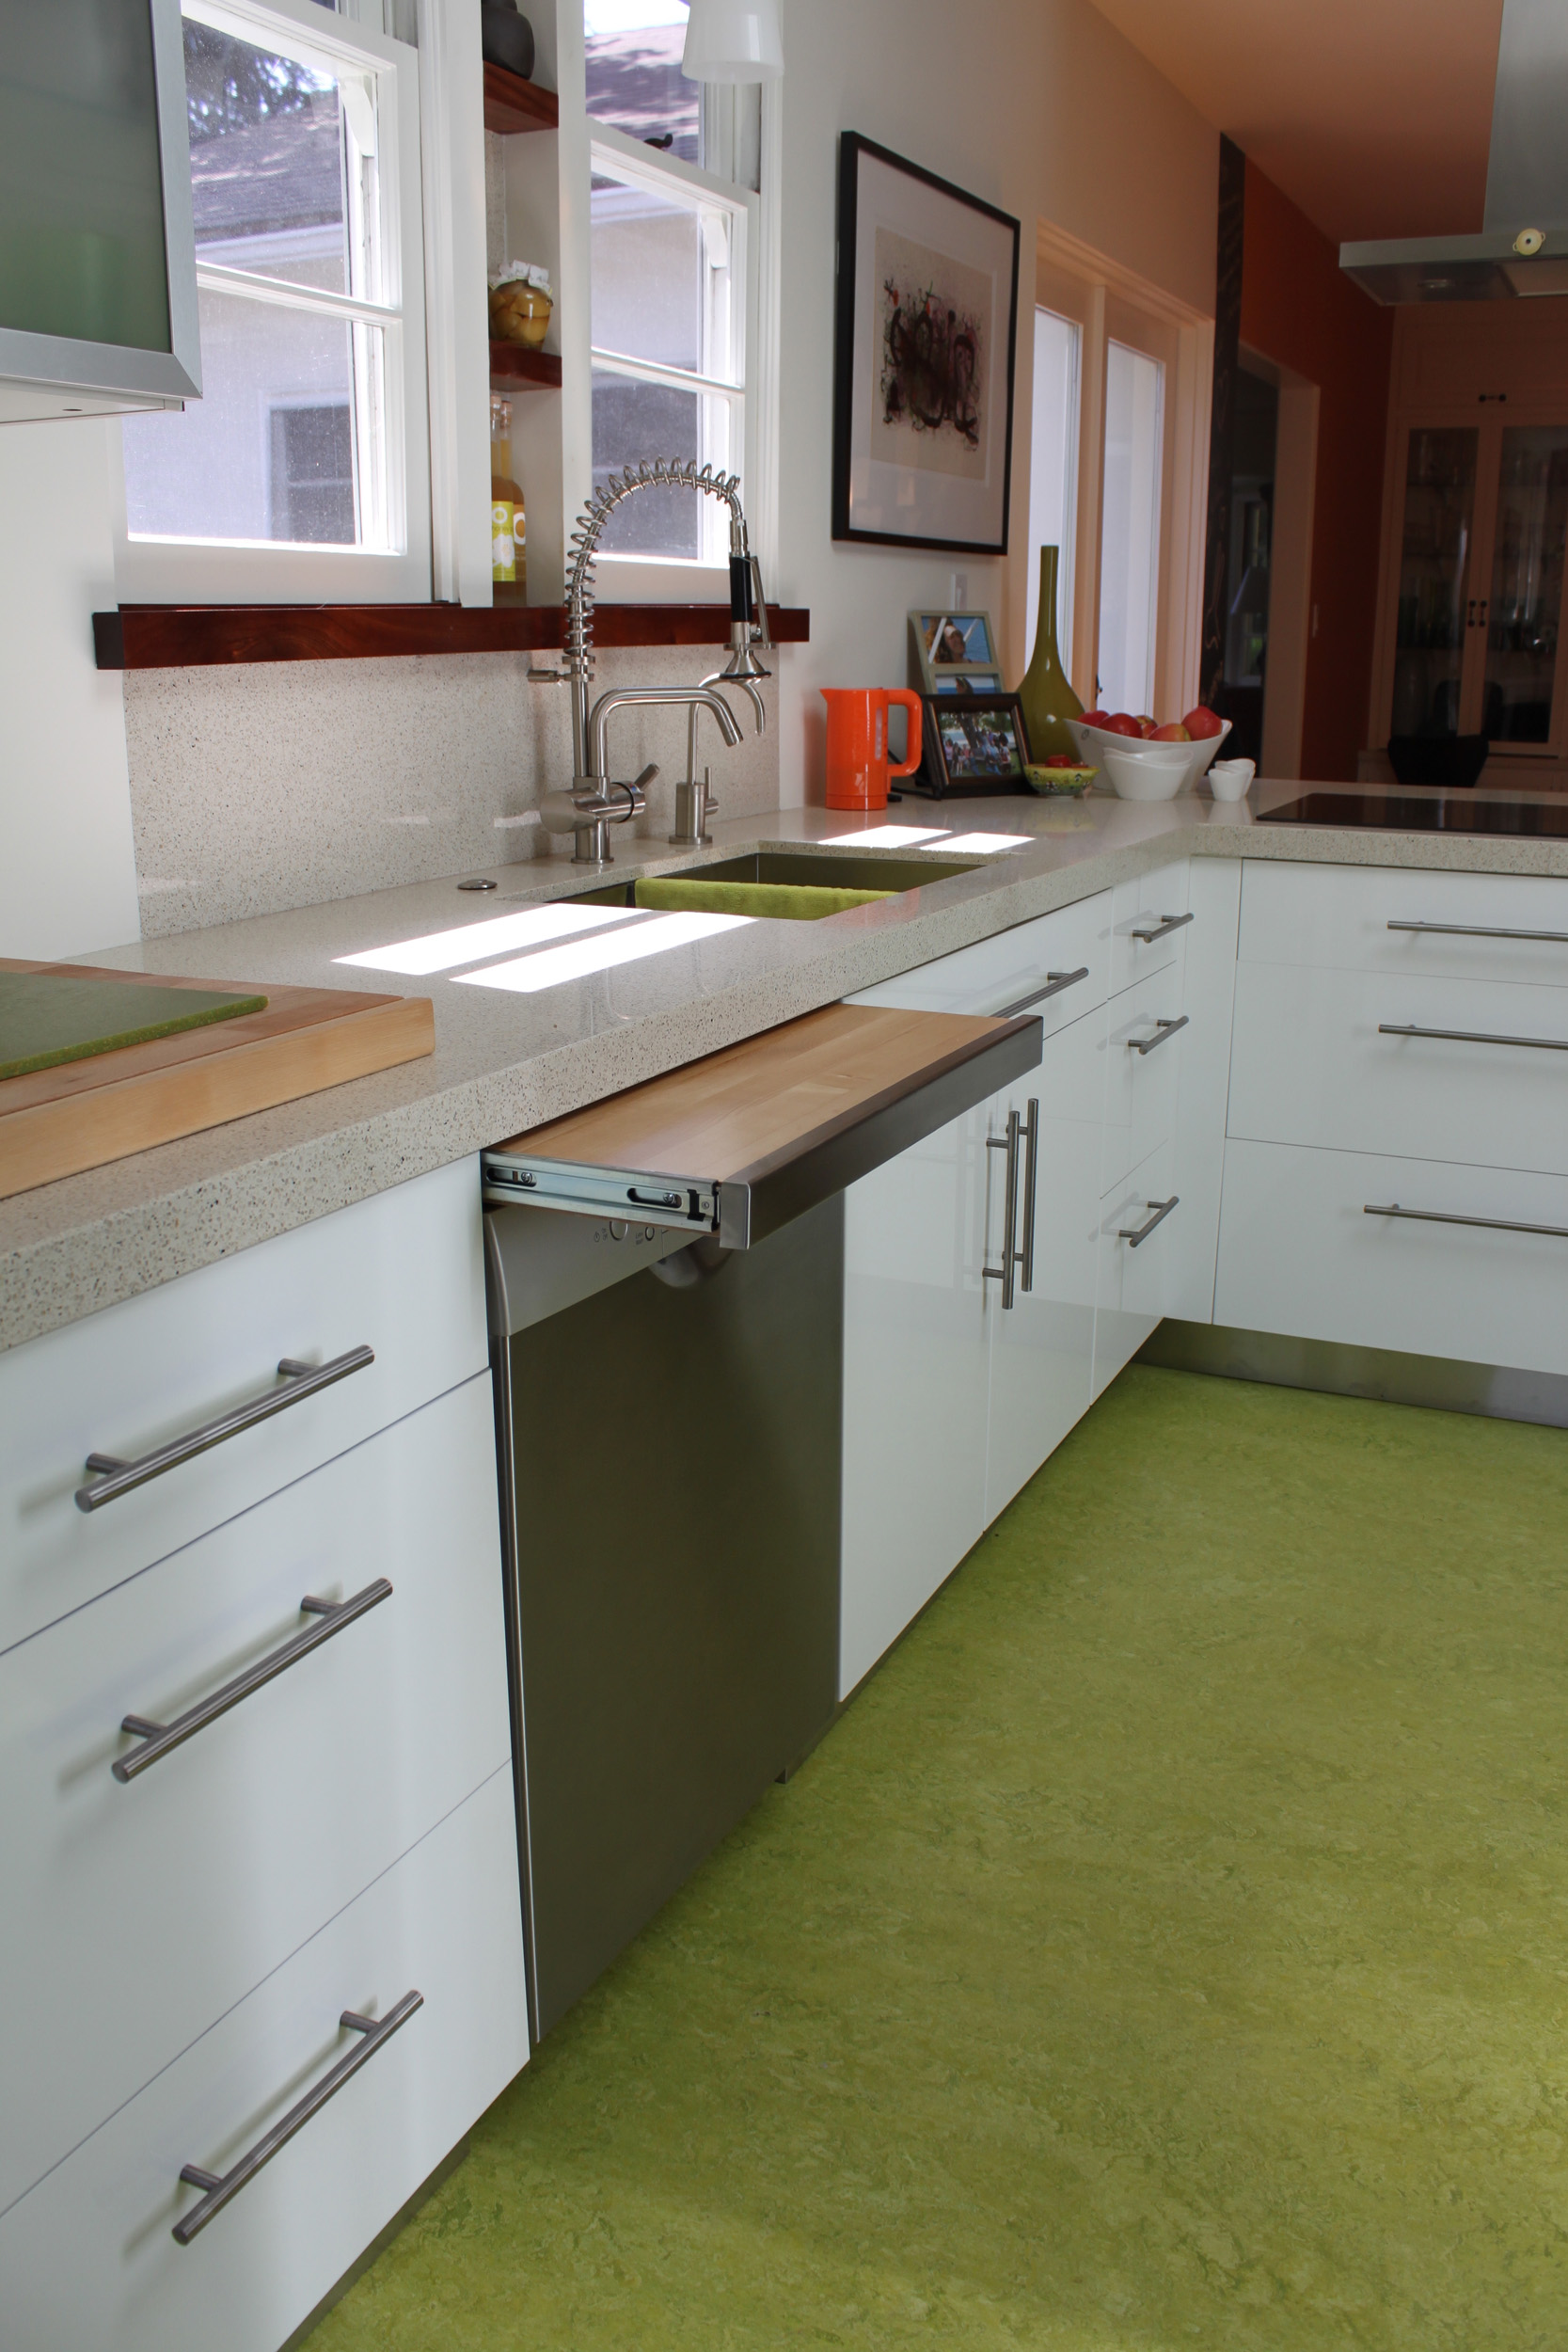 Kitchen incognito: butcher block with stainless steel roll-out finish over dishwasher